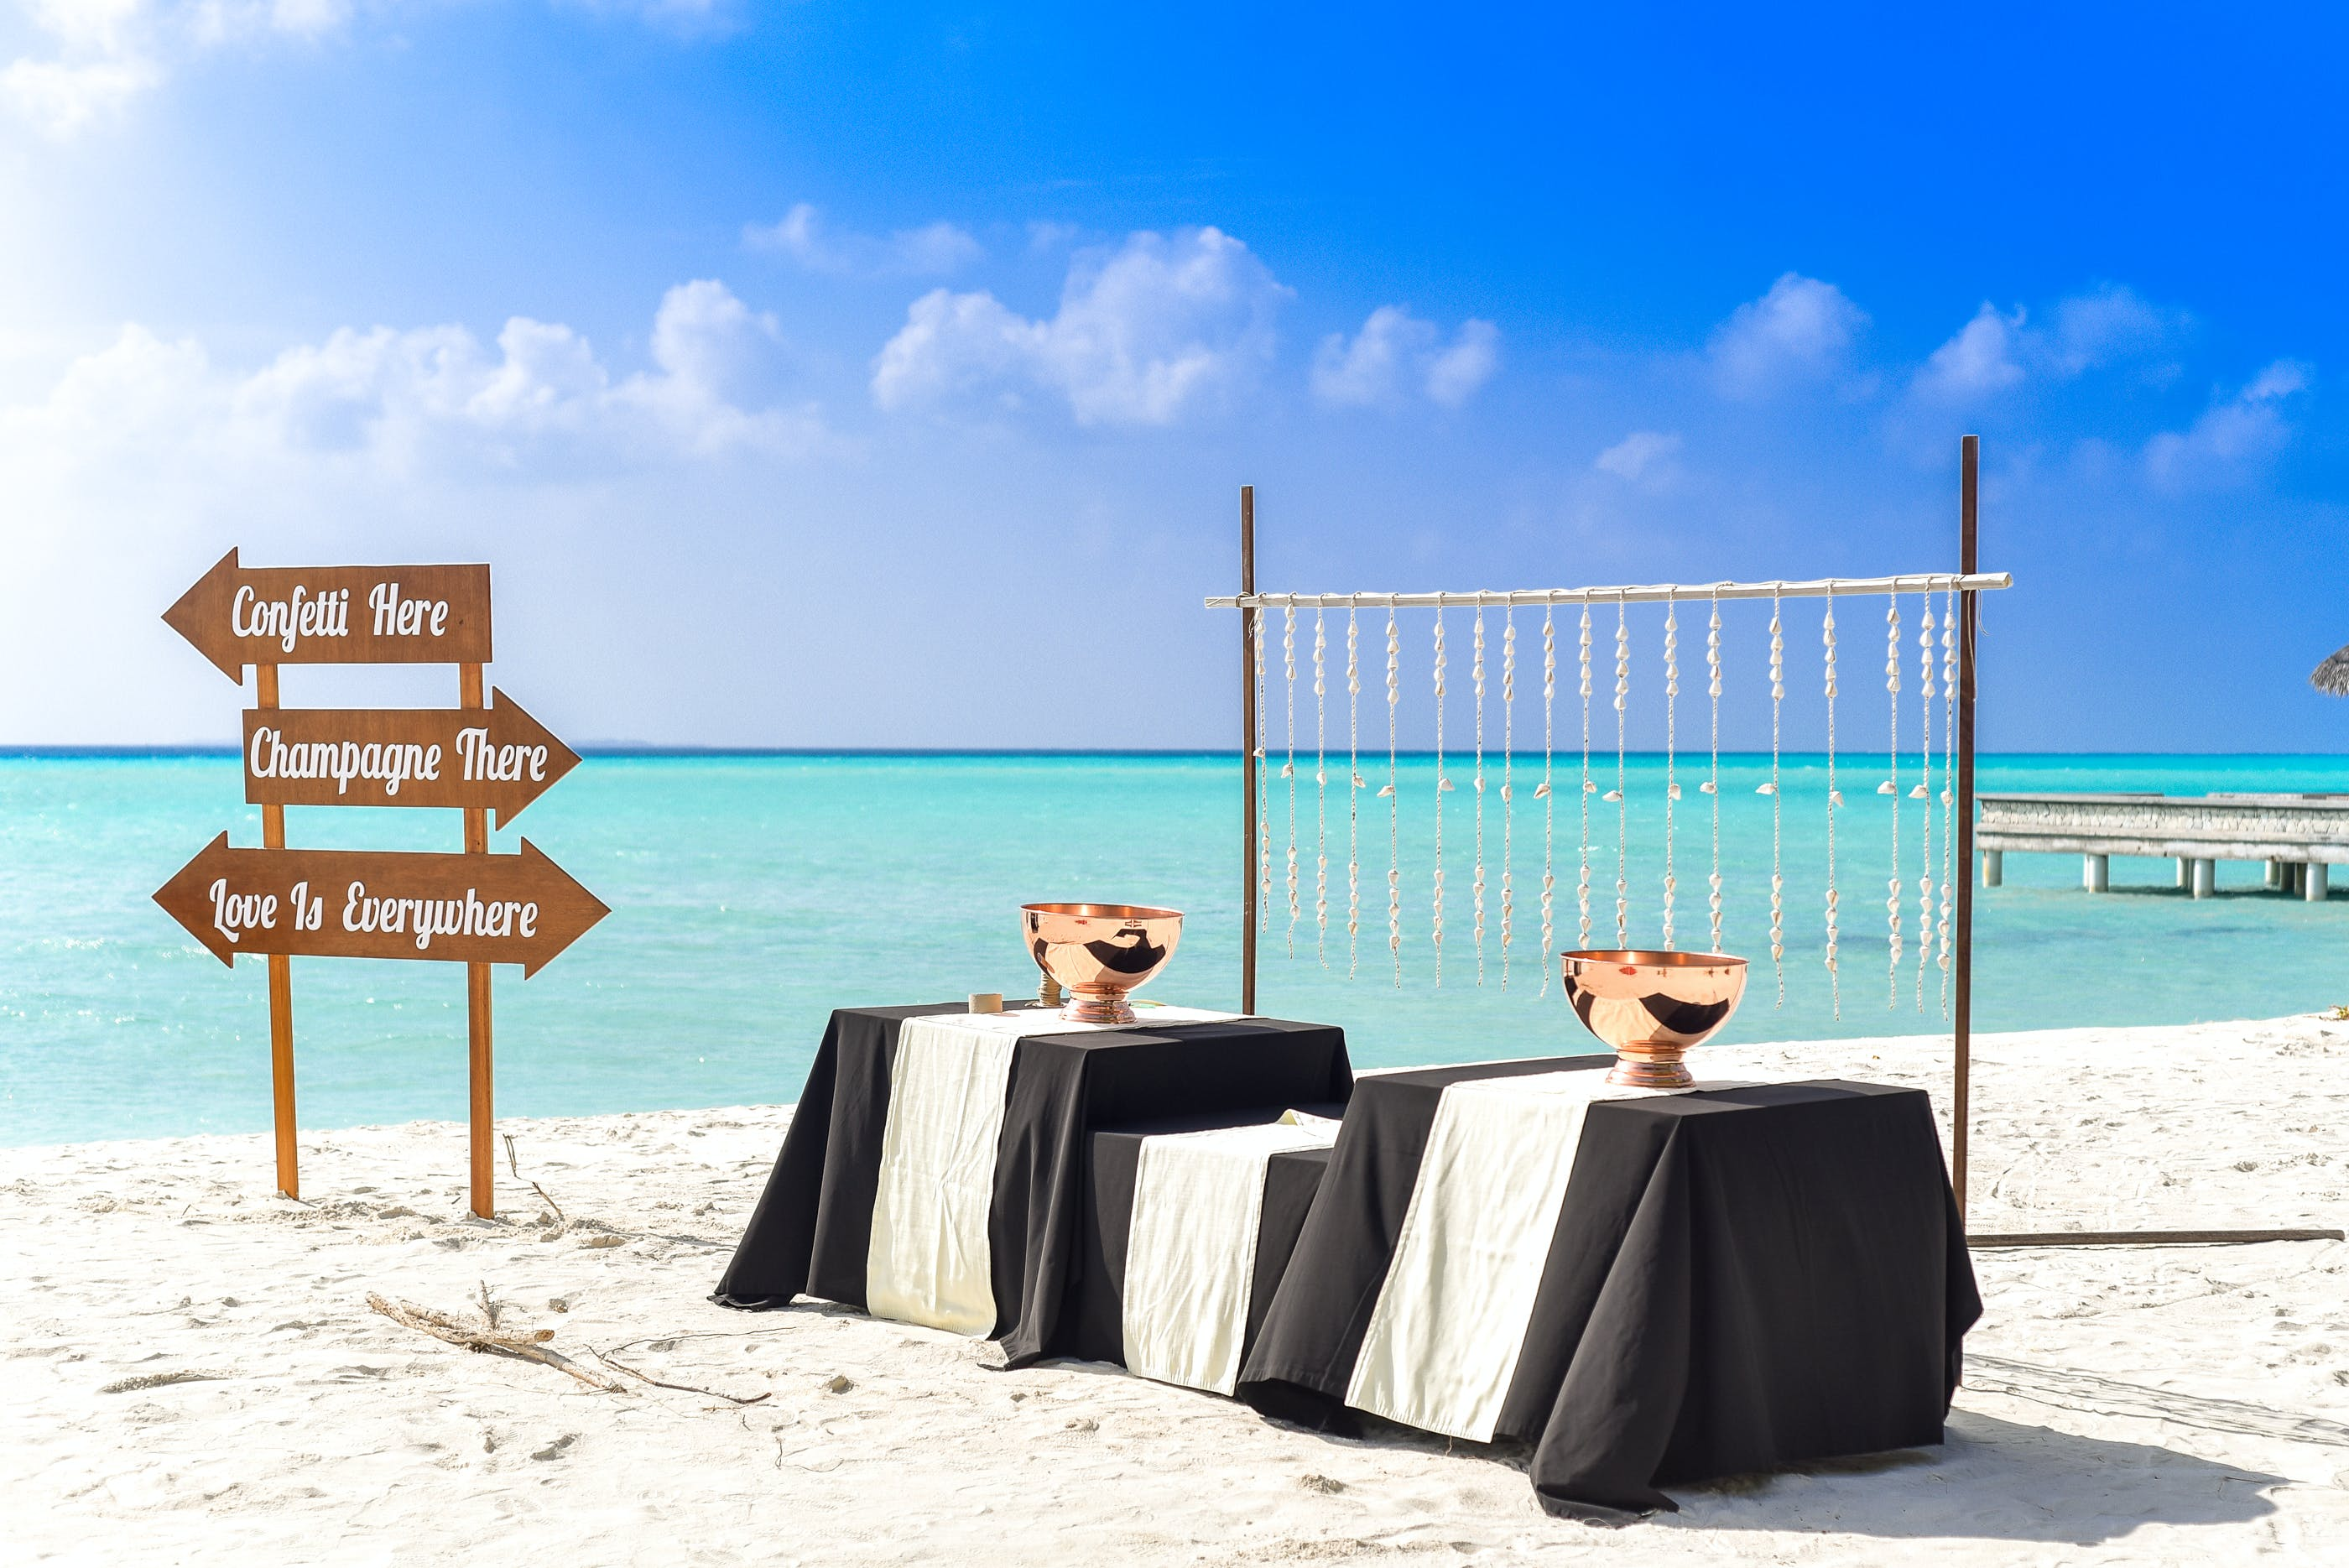 Three Tables Covered With Black and White Tablecloths on Seashore